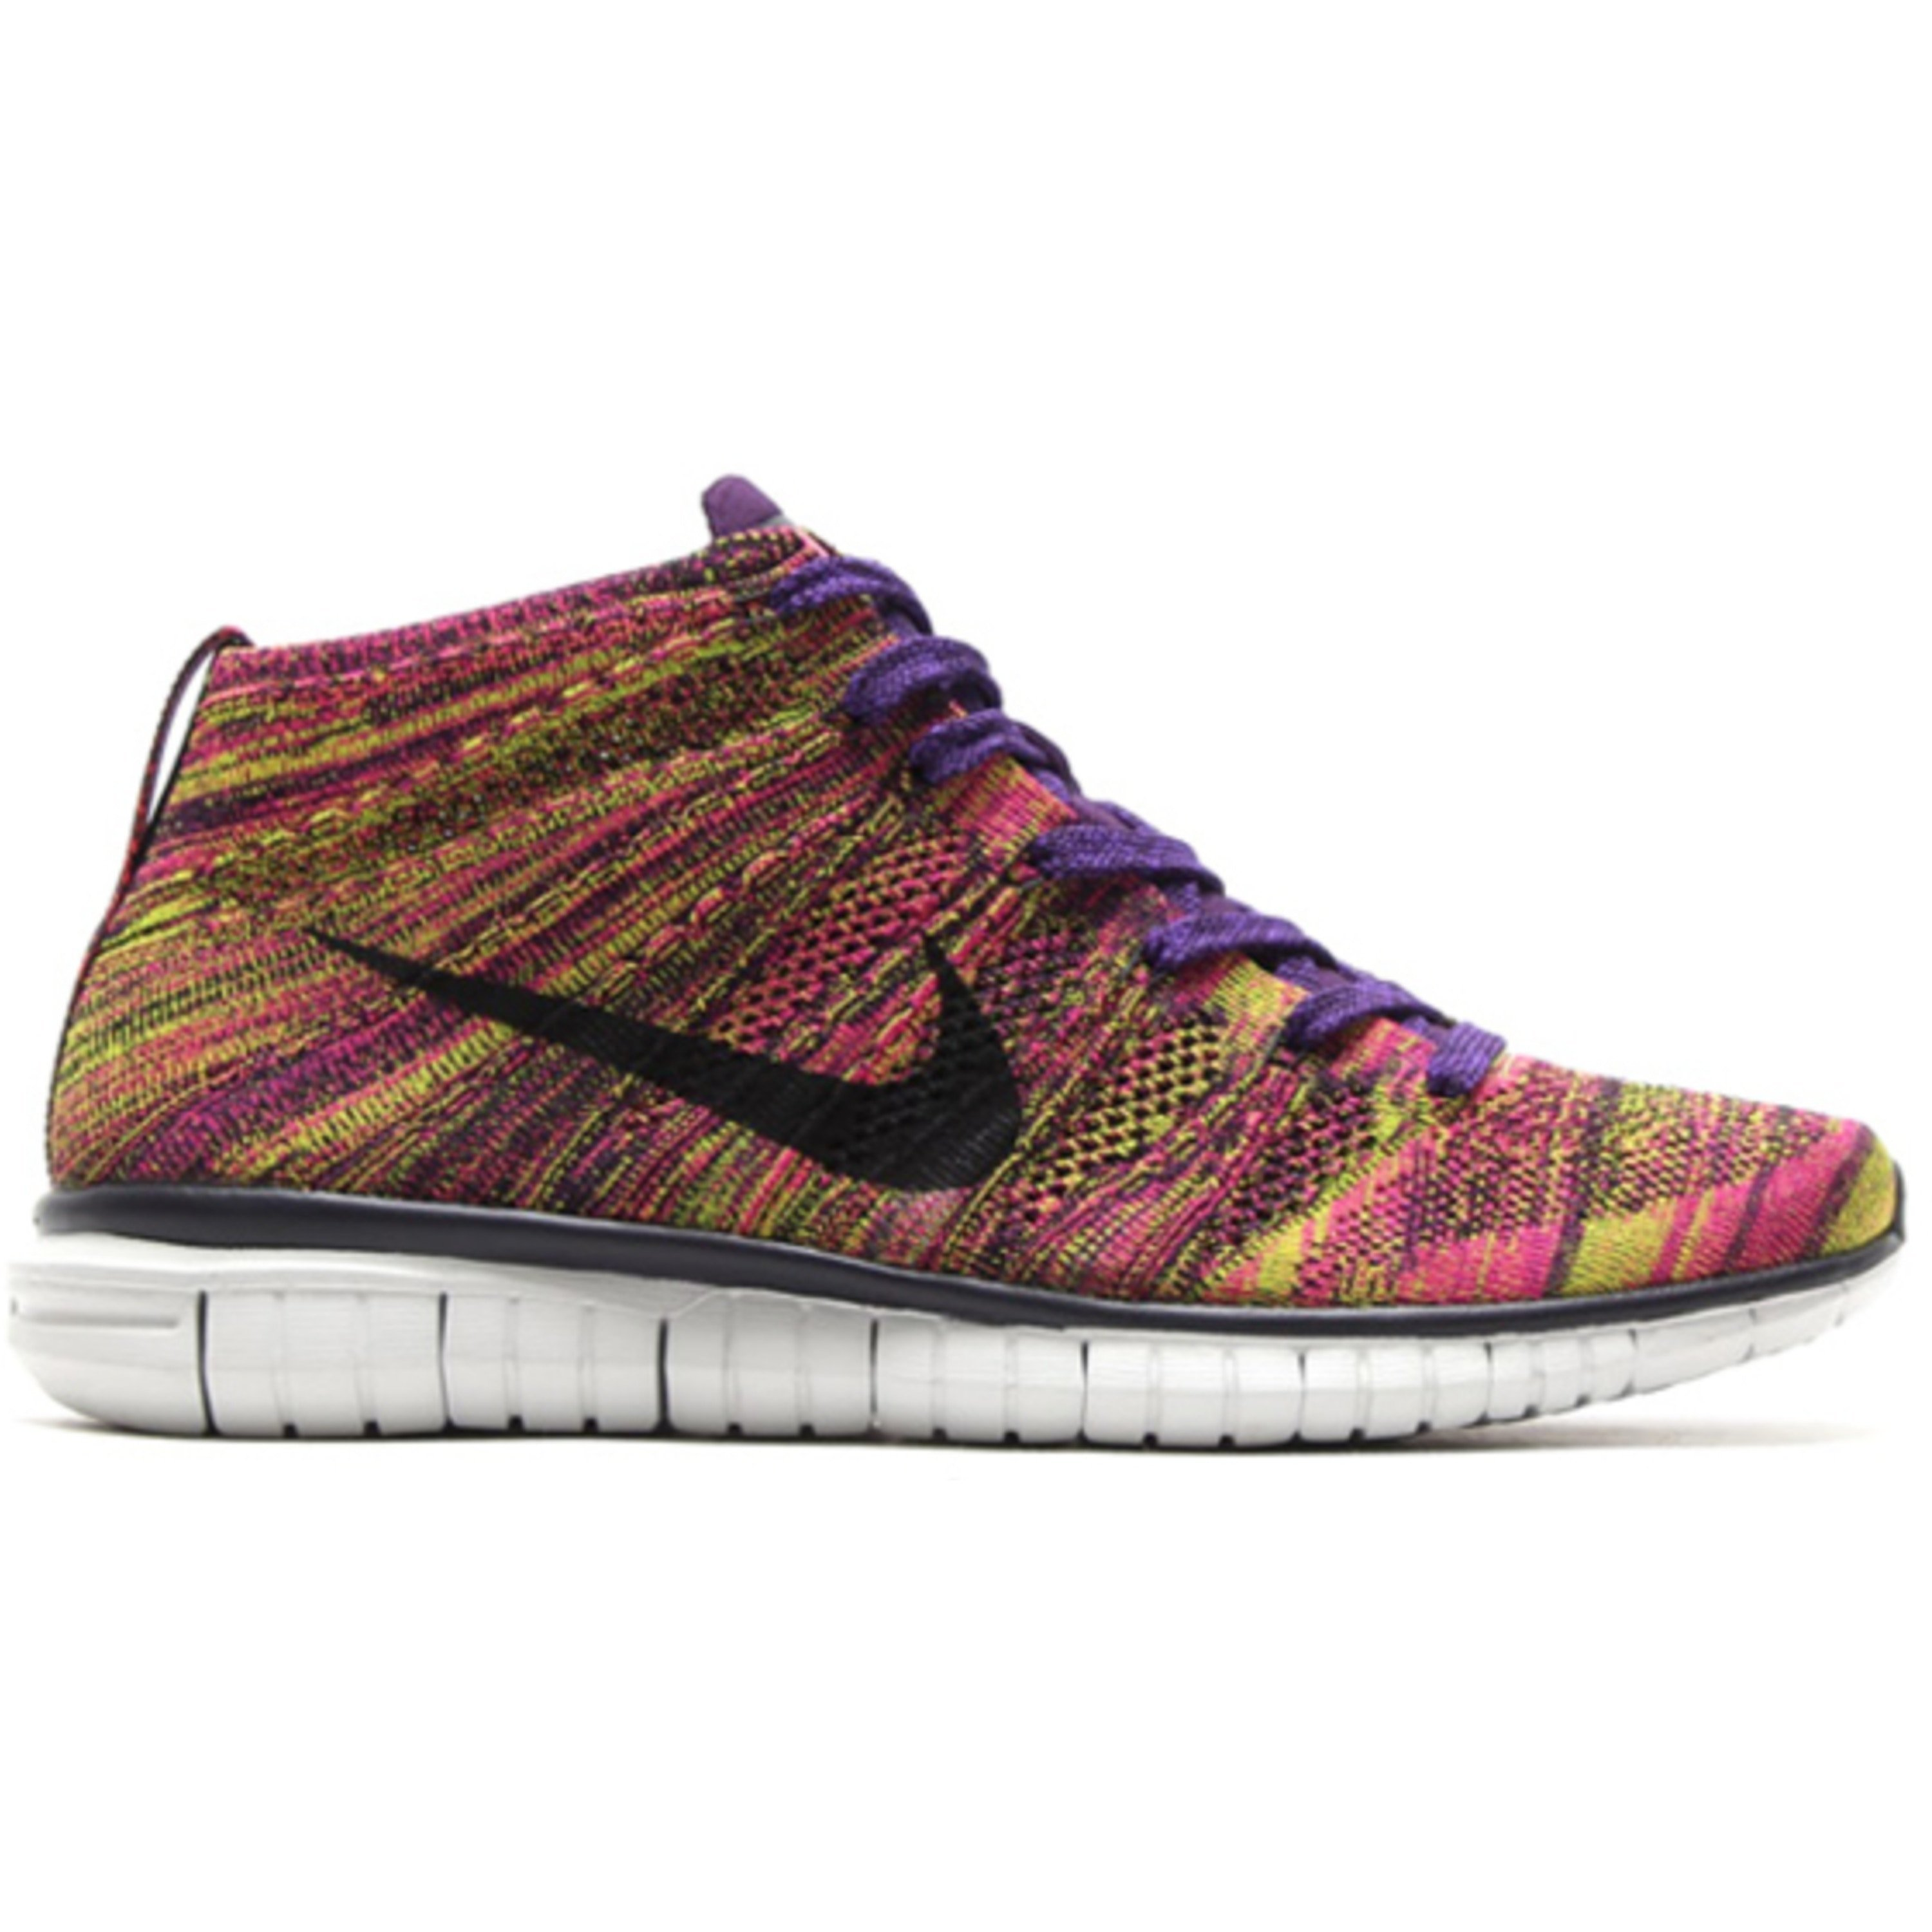 Nike Flyknit Chukka Grand Purple (639700-501)